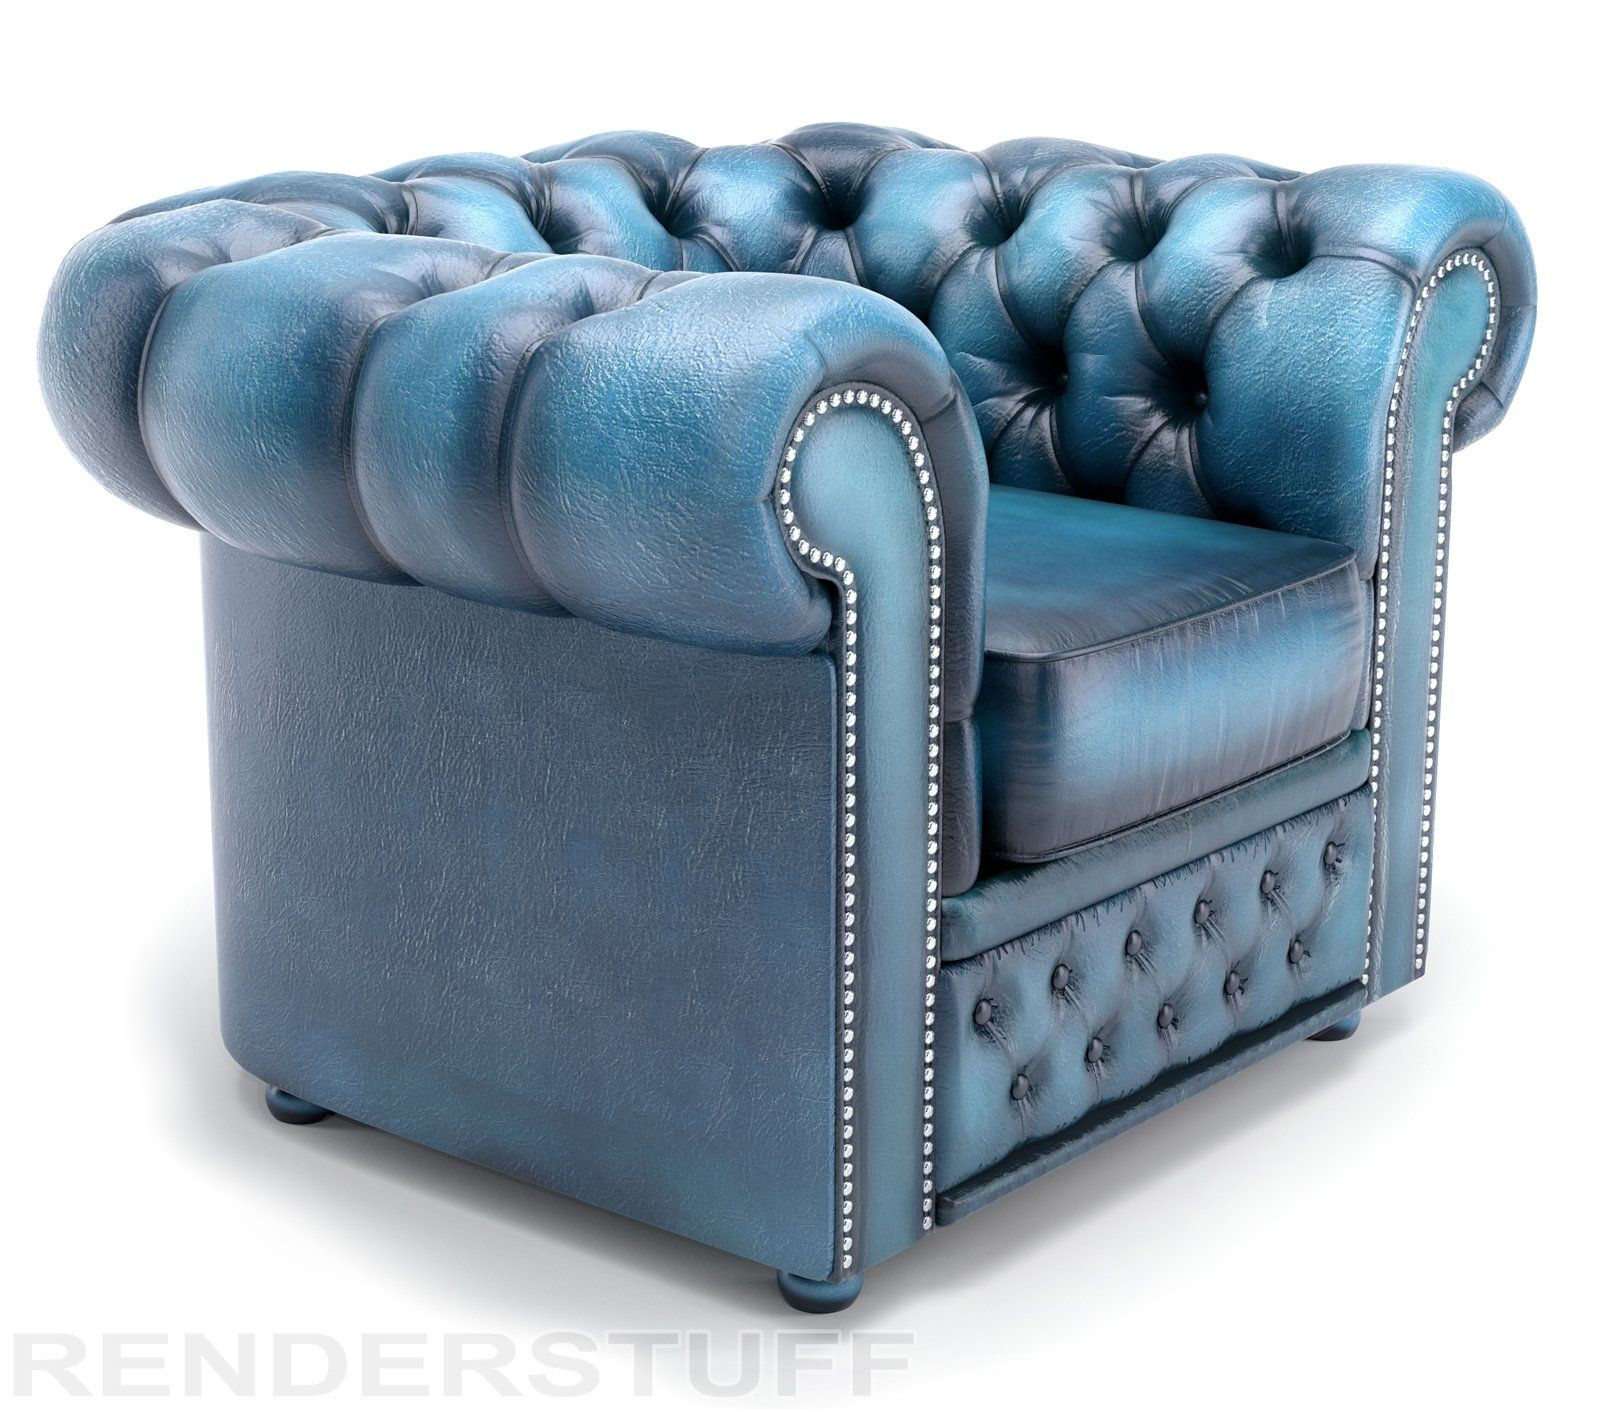 navy leather chesterfield sofa light gray bed blue best couch